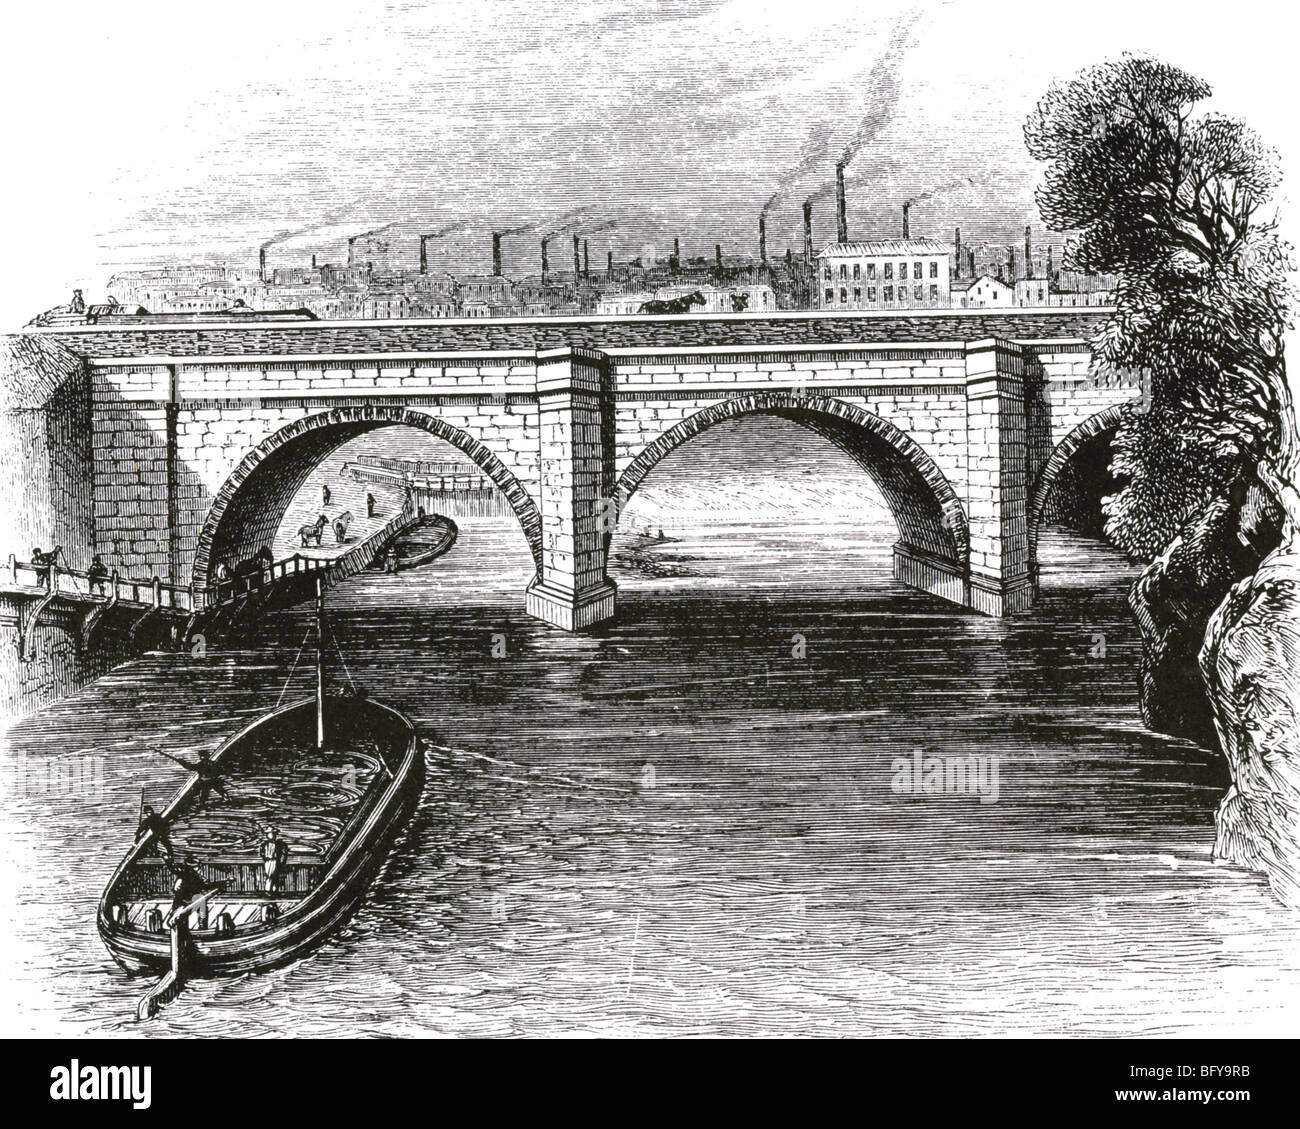 BARTON AQUEDUCT built by James Brindley in 1761 to carry his Bridgewater  Canal over the River Irwell just outside Manchester.